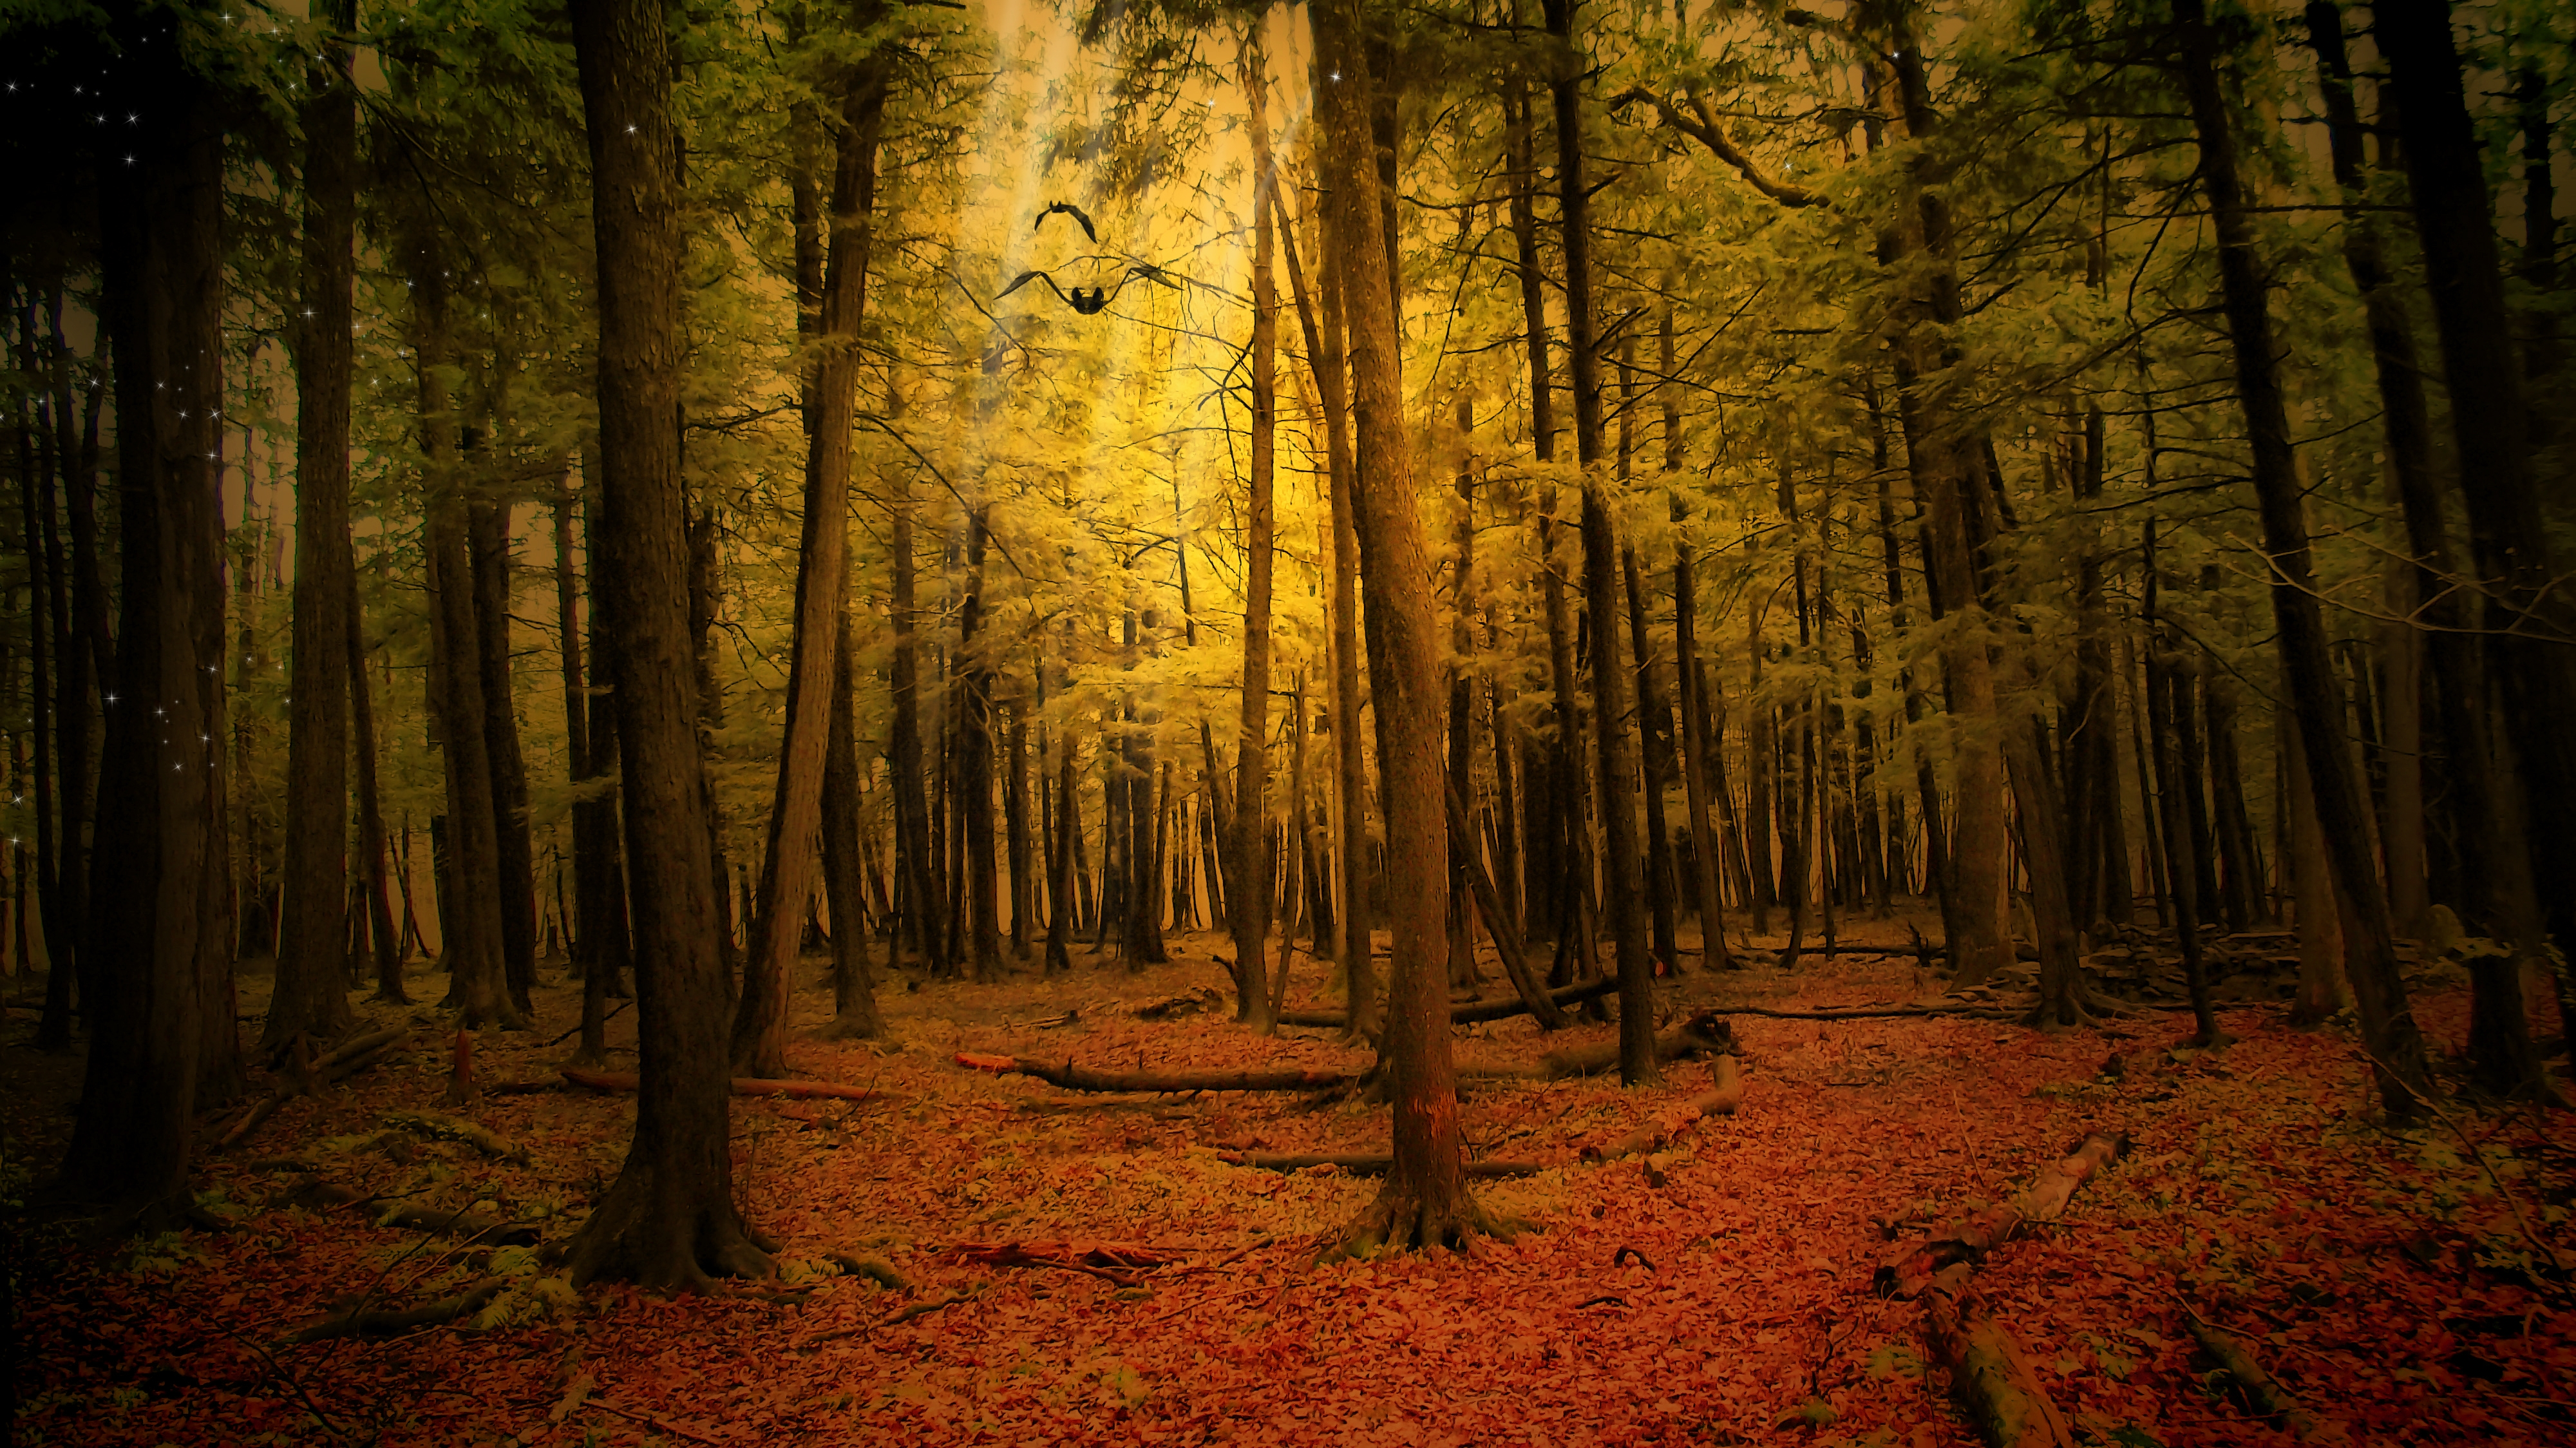 150256 download wallpaper Nature, Autumn, Forest, Landscape screensavers and pictures for free